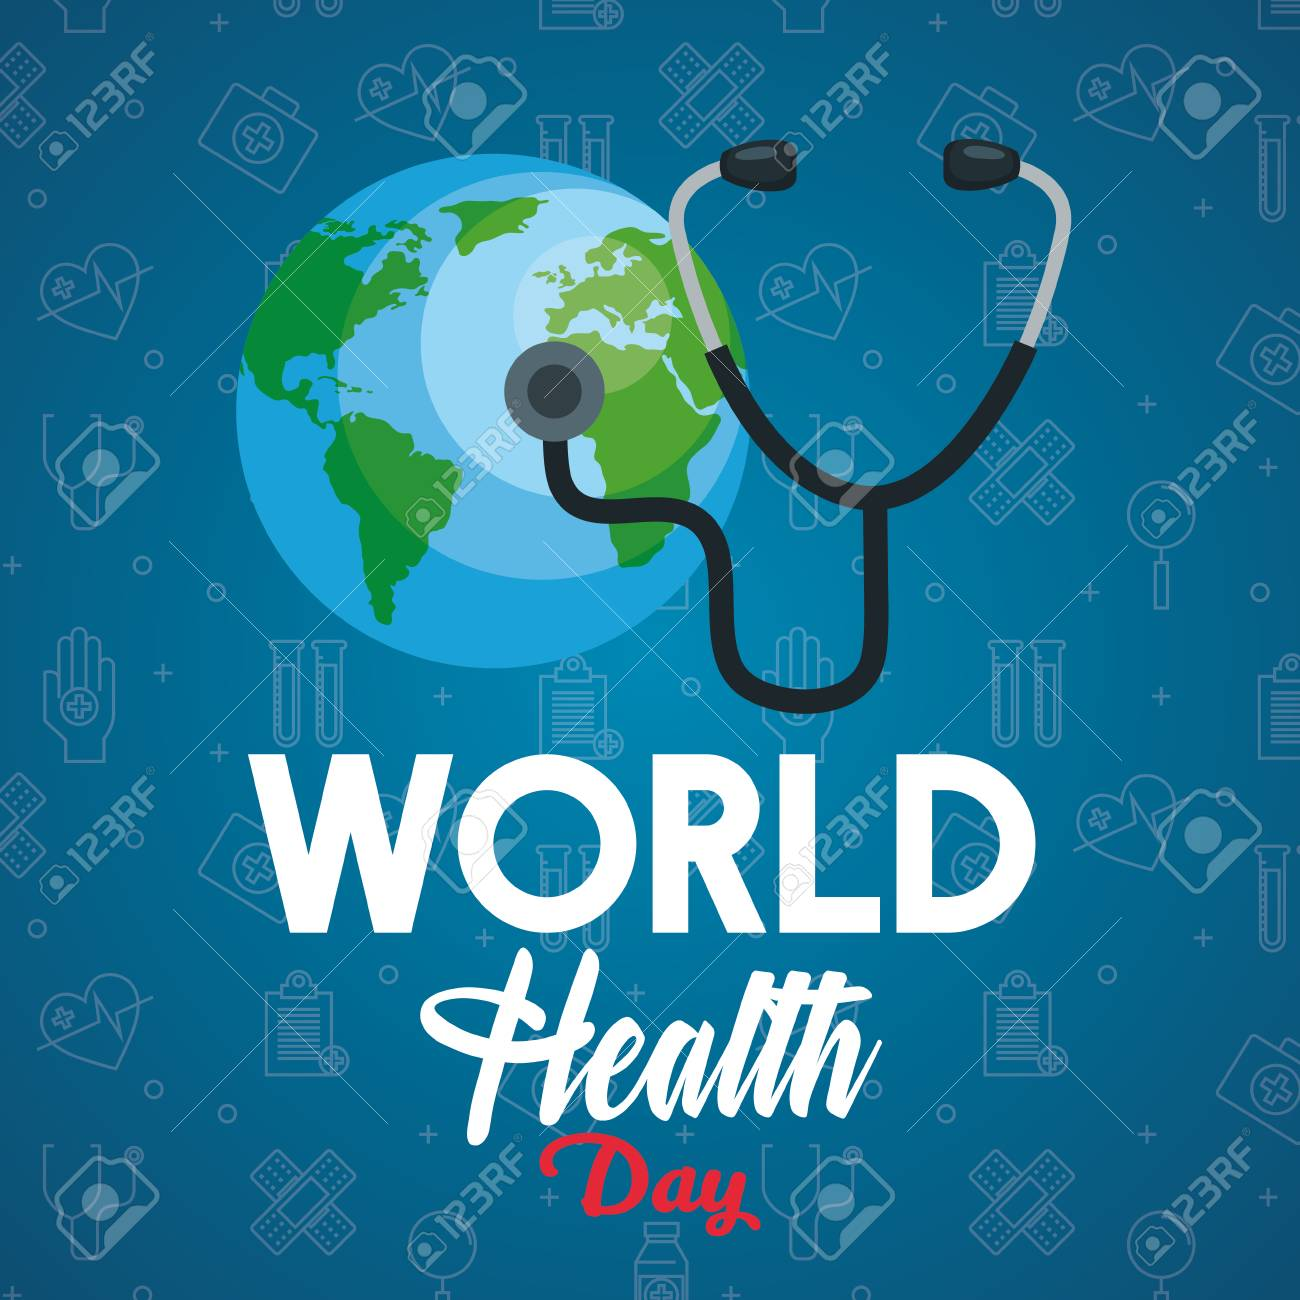 stethoscope examination earth planet to health day vector illustration - 119237339